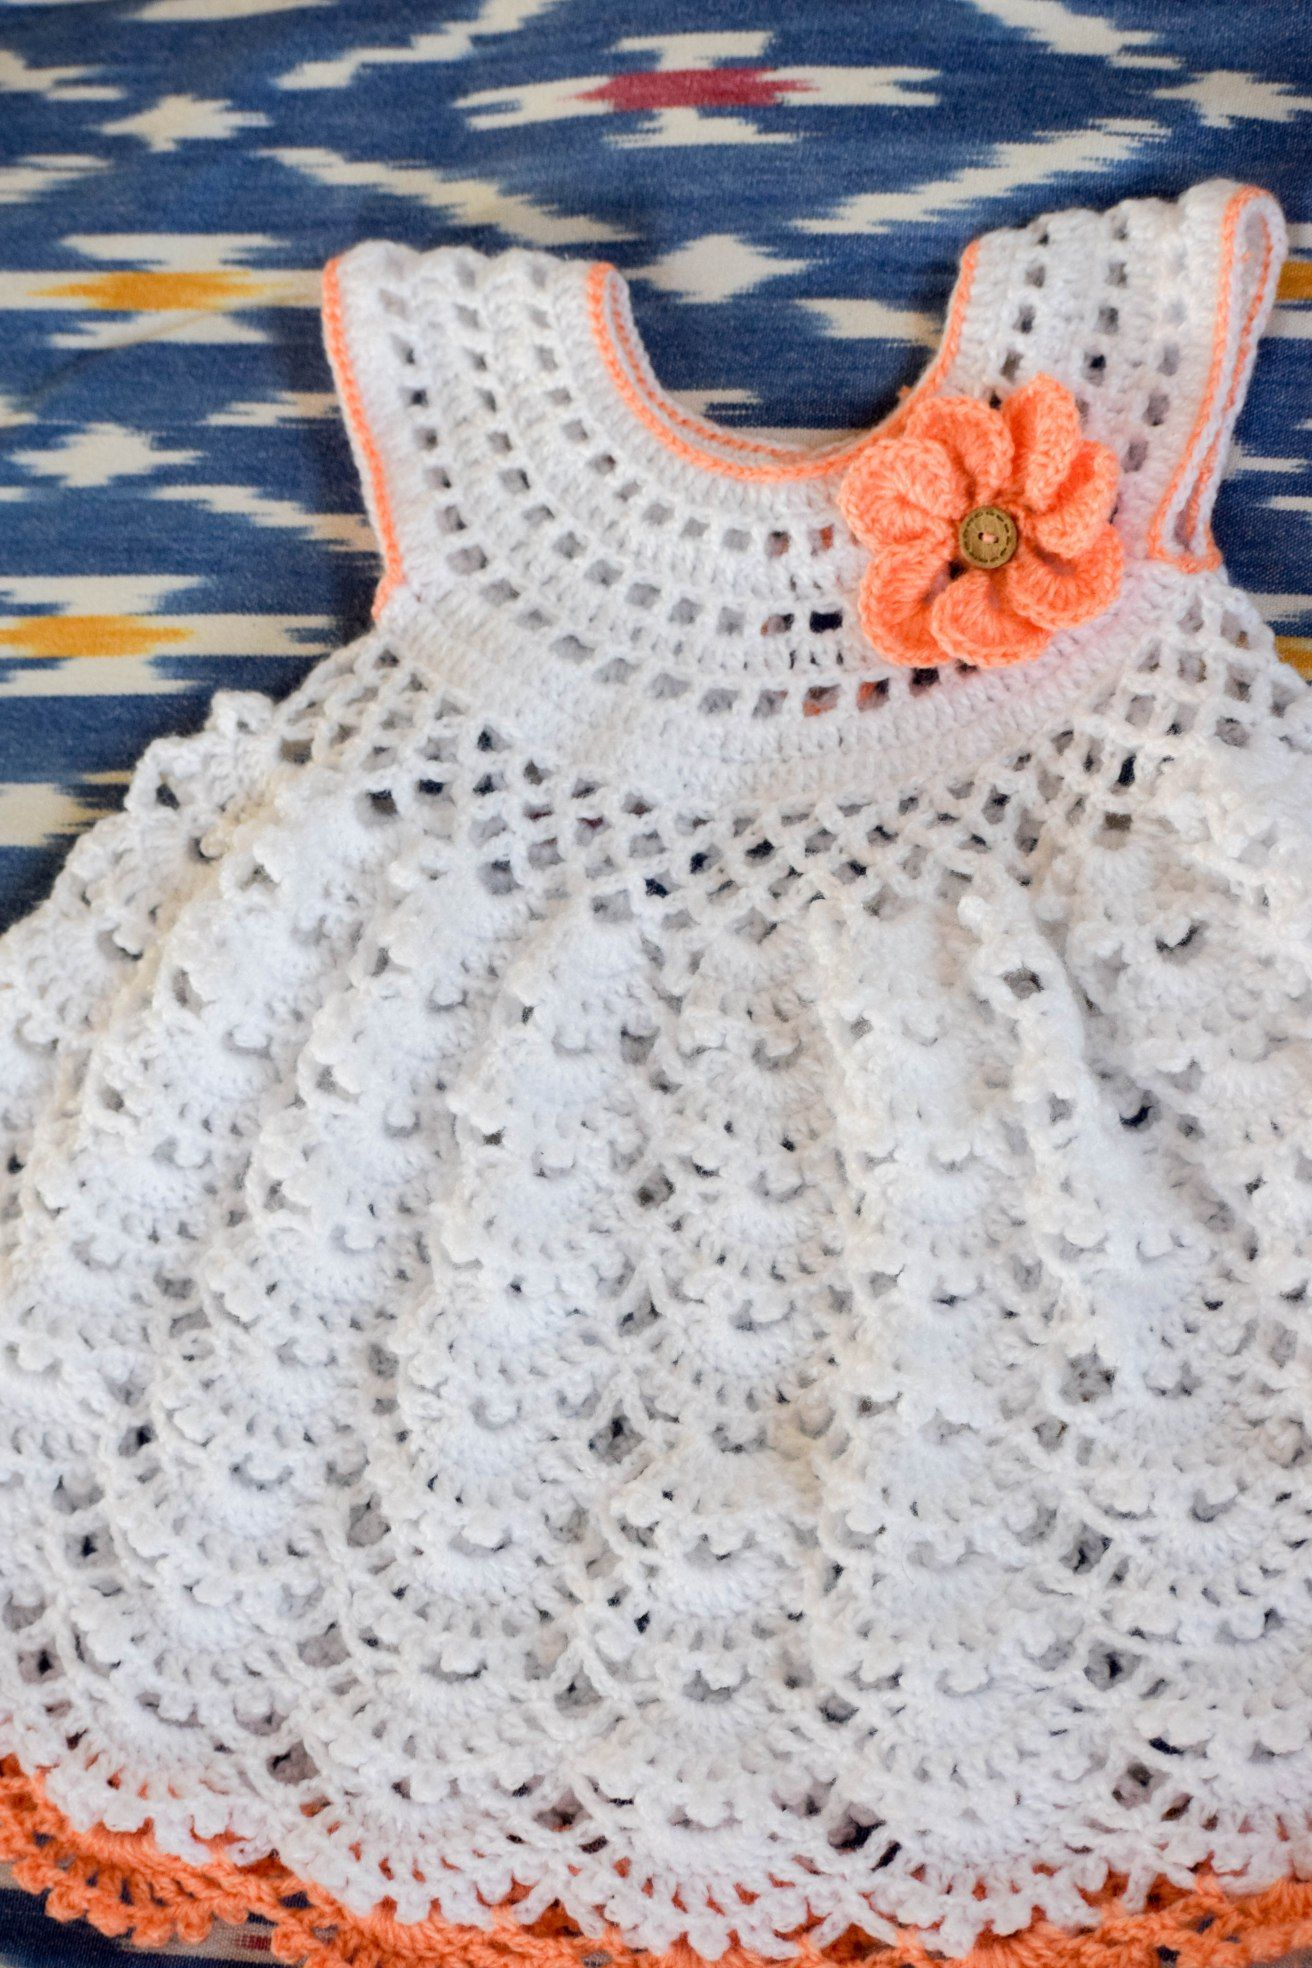 Delilah crochet dress free pattern for baby girl crochet dress delilah crochet dress free pattern for baby girl crochet dress bankloansurffo Image collections